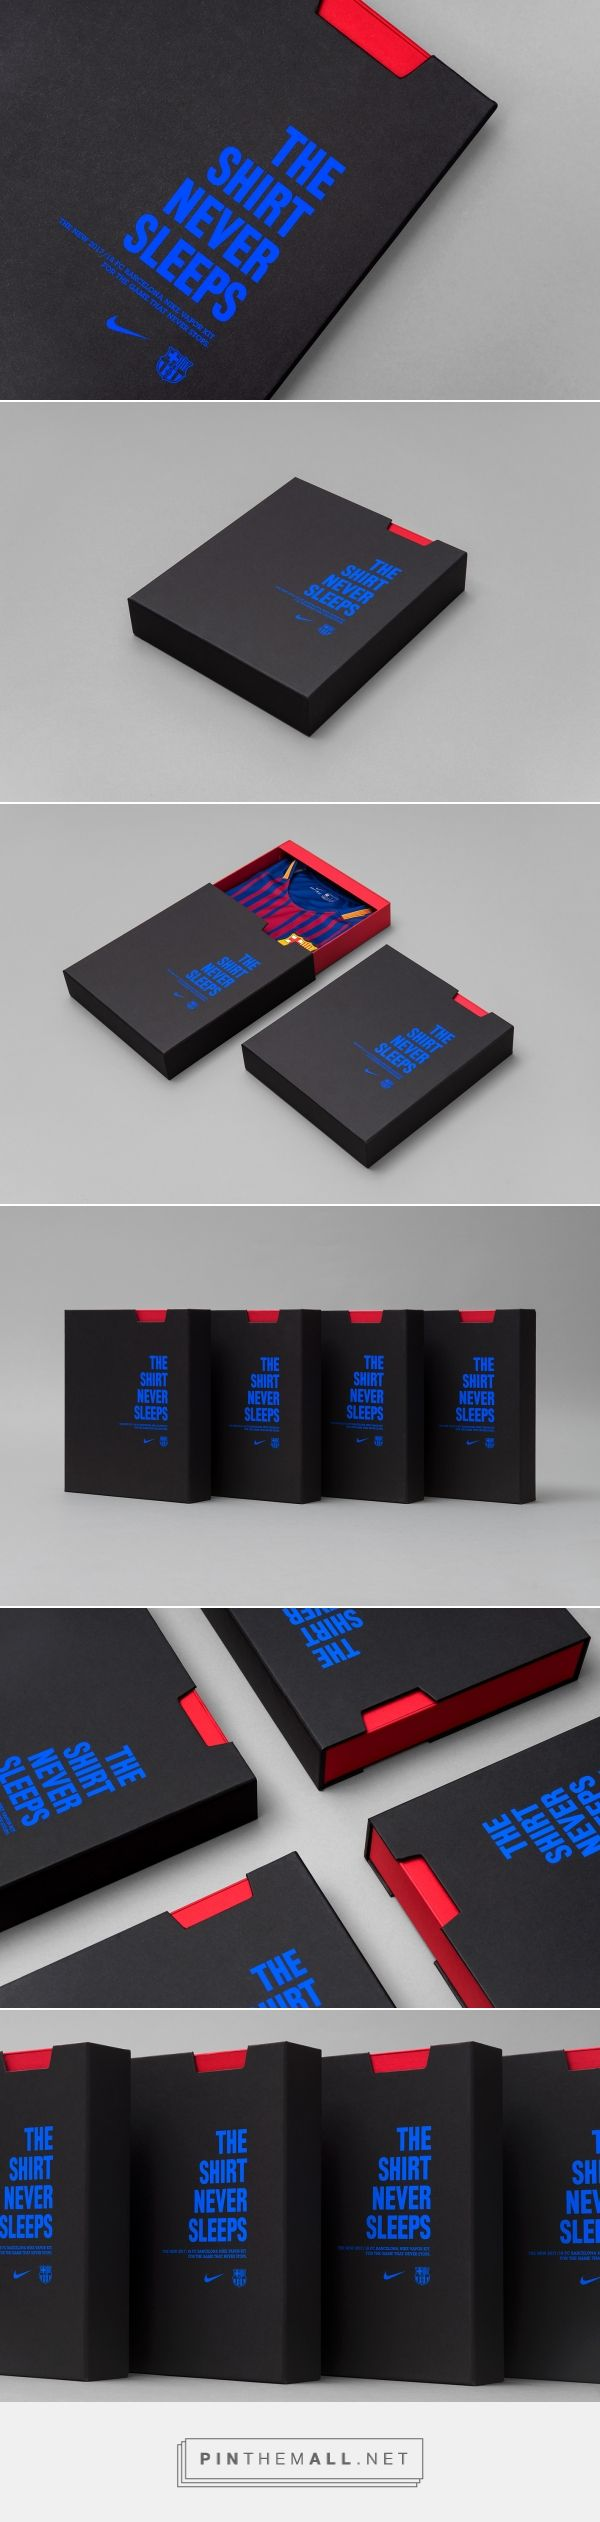 FC Barcelona 2017-18 Jersey packaging design by Oxigen - http://www.packagingoftheworld.com/2017/07/fc-barcelona-2017-18-official-jersey.html